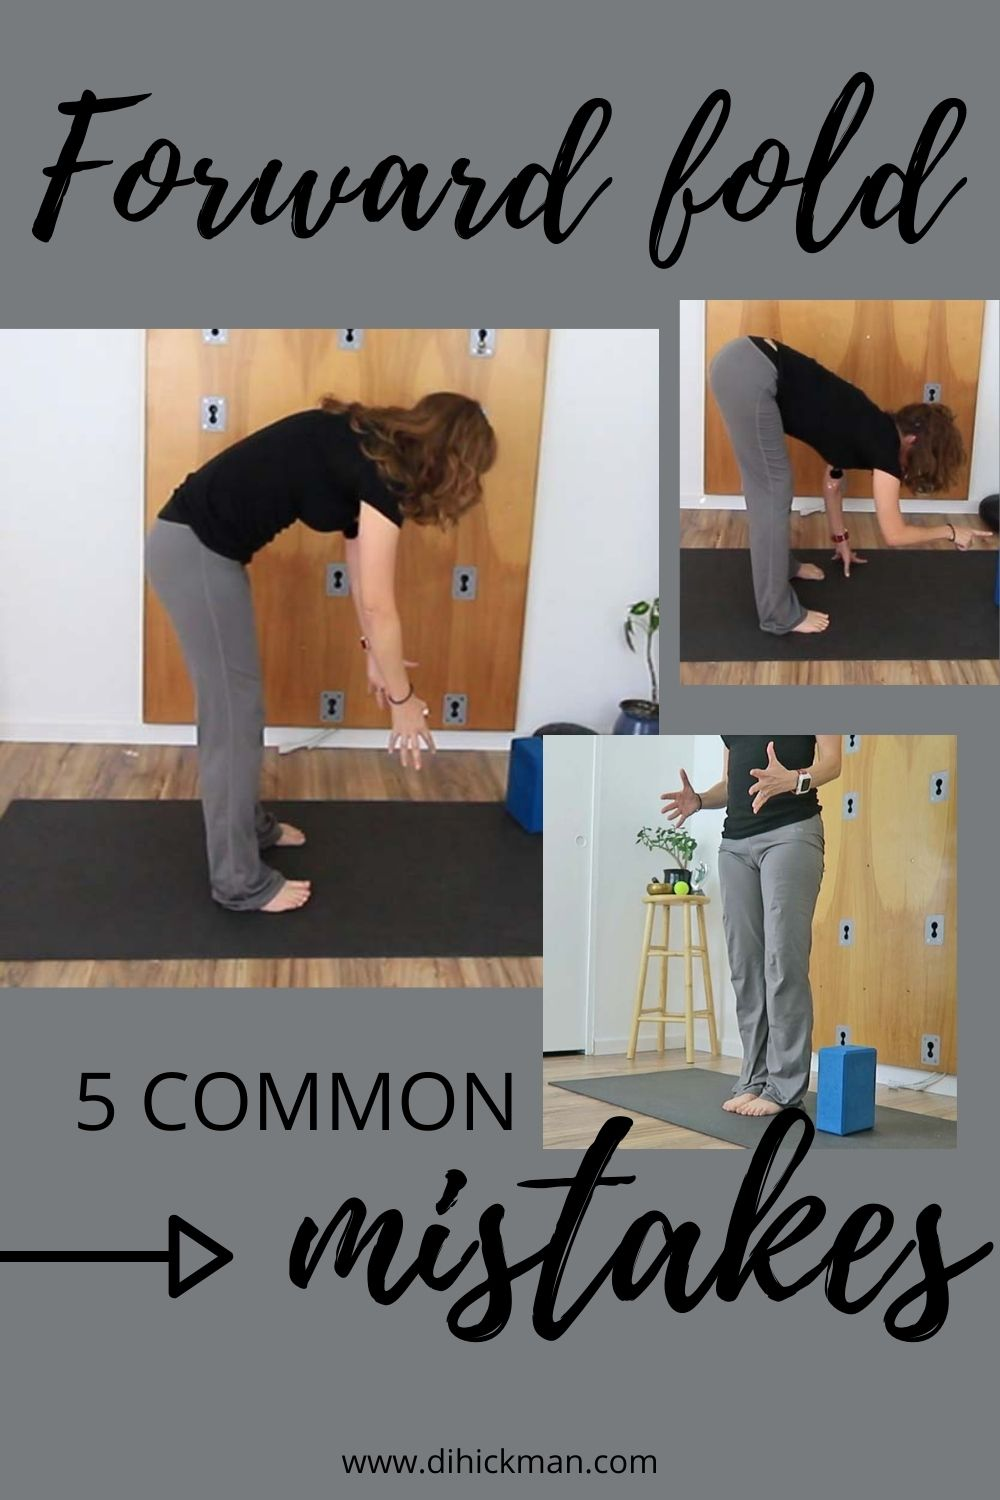 Forward fold, 5 common mistakes